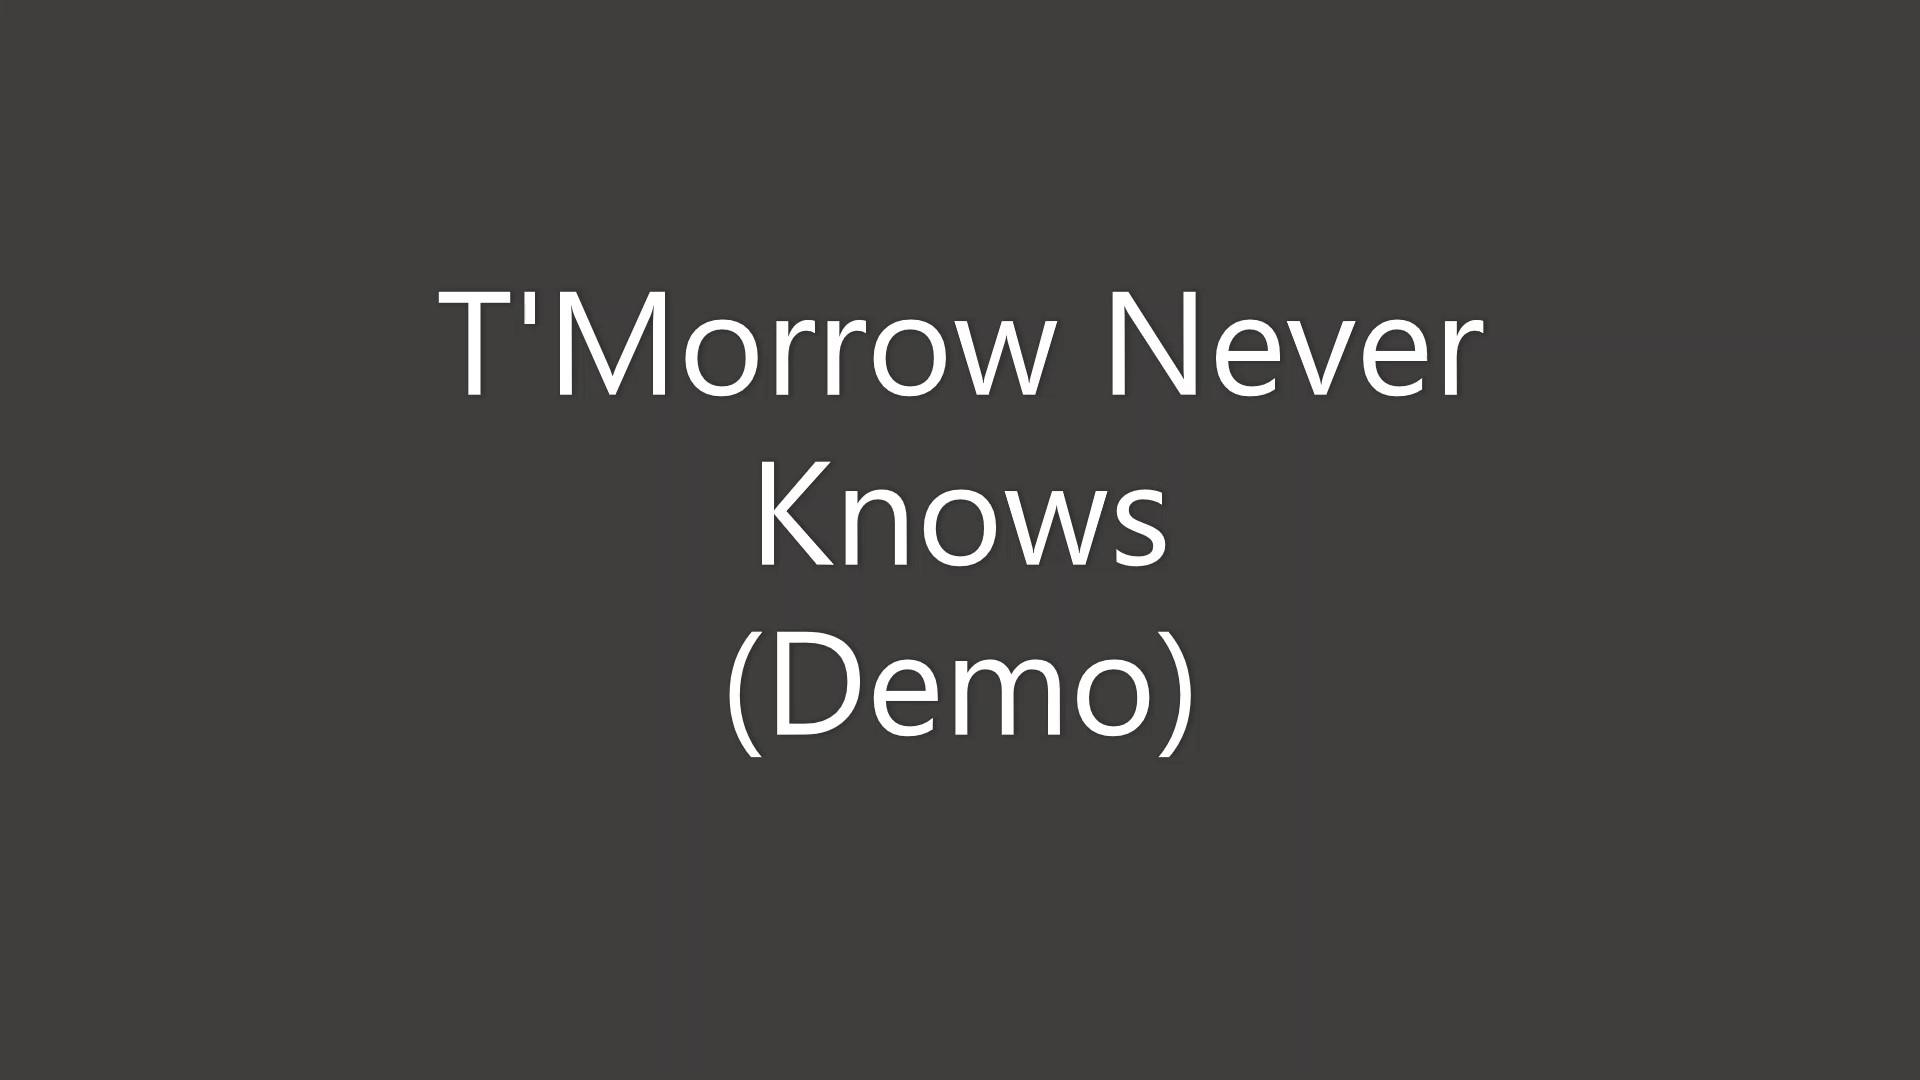 T'Morrow Never Knows Demo